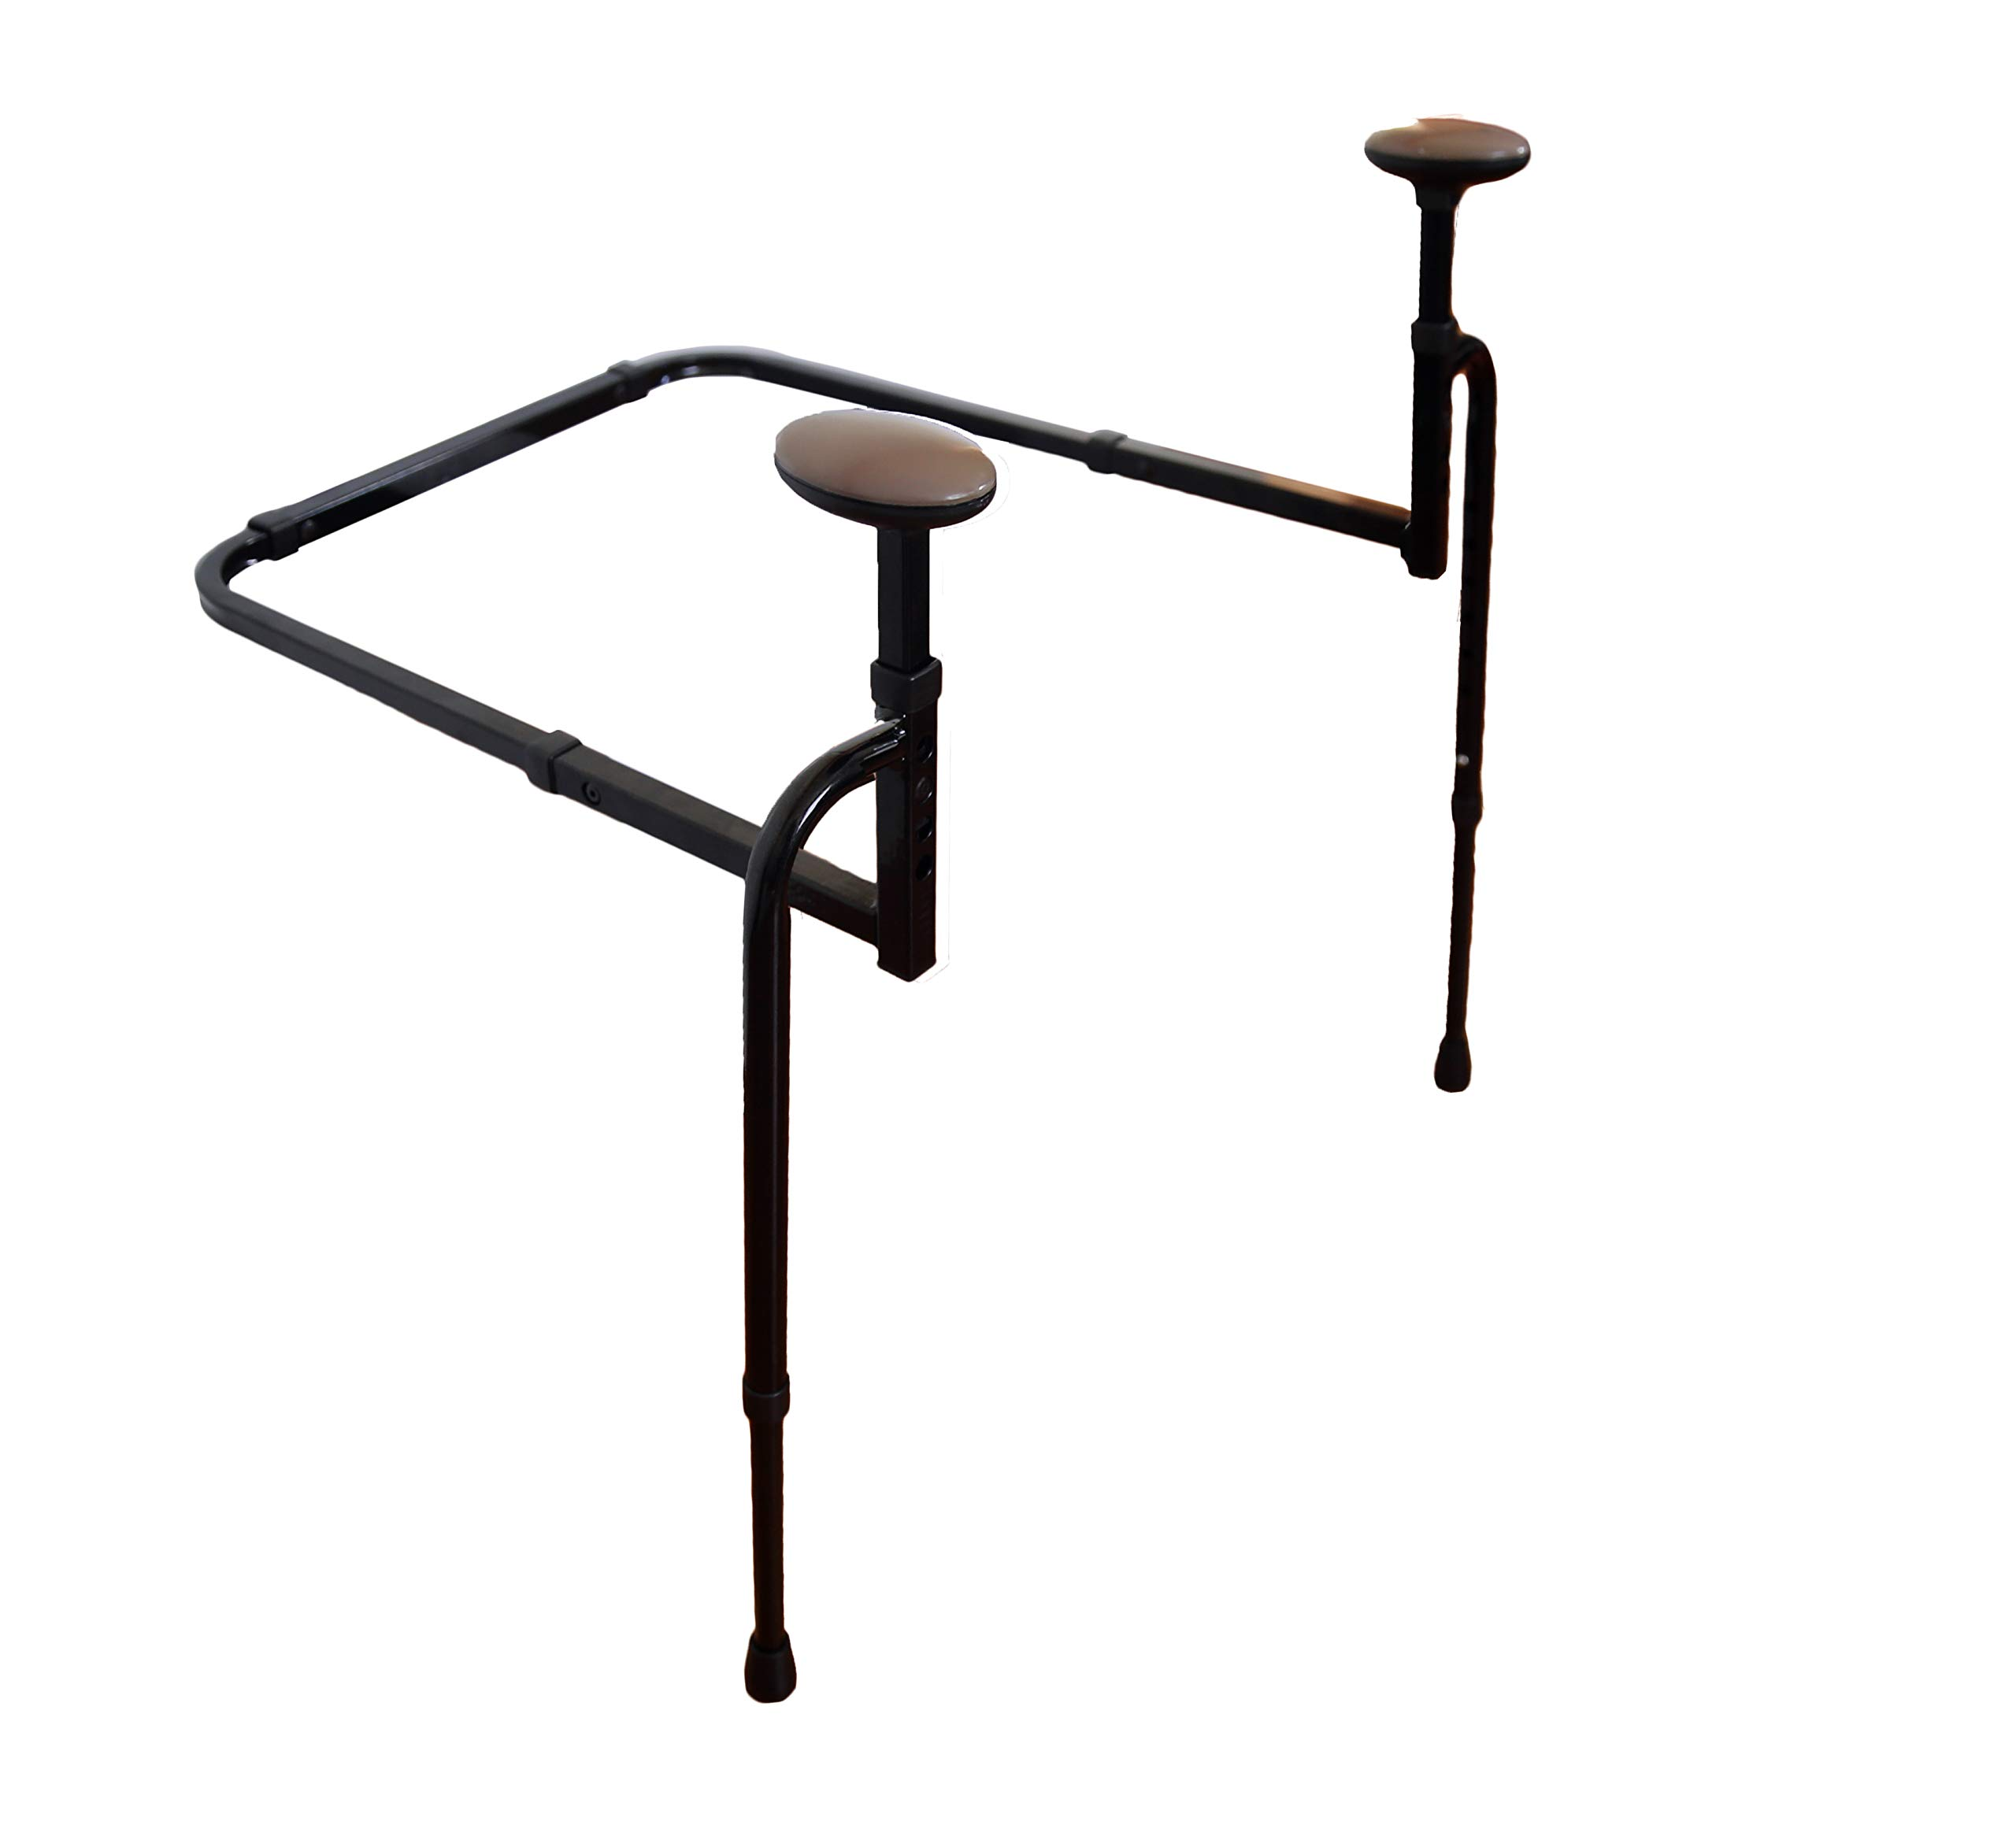 Stander EZ Stand-N-Go - Ergonomic Stand Assist Handles + Adjustable Standing Mobility Aid for Couch Chair & Sofa & Living Room Grab Bar by Stander